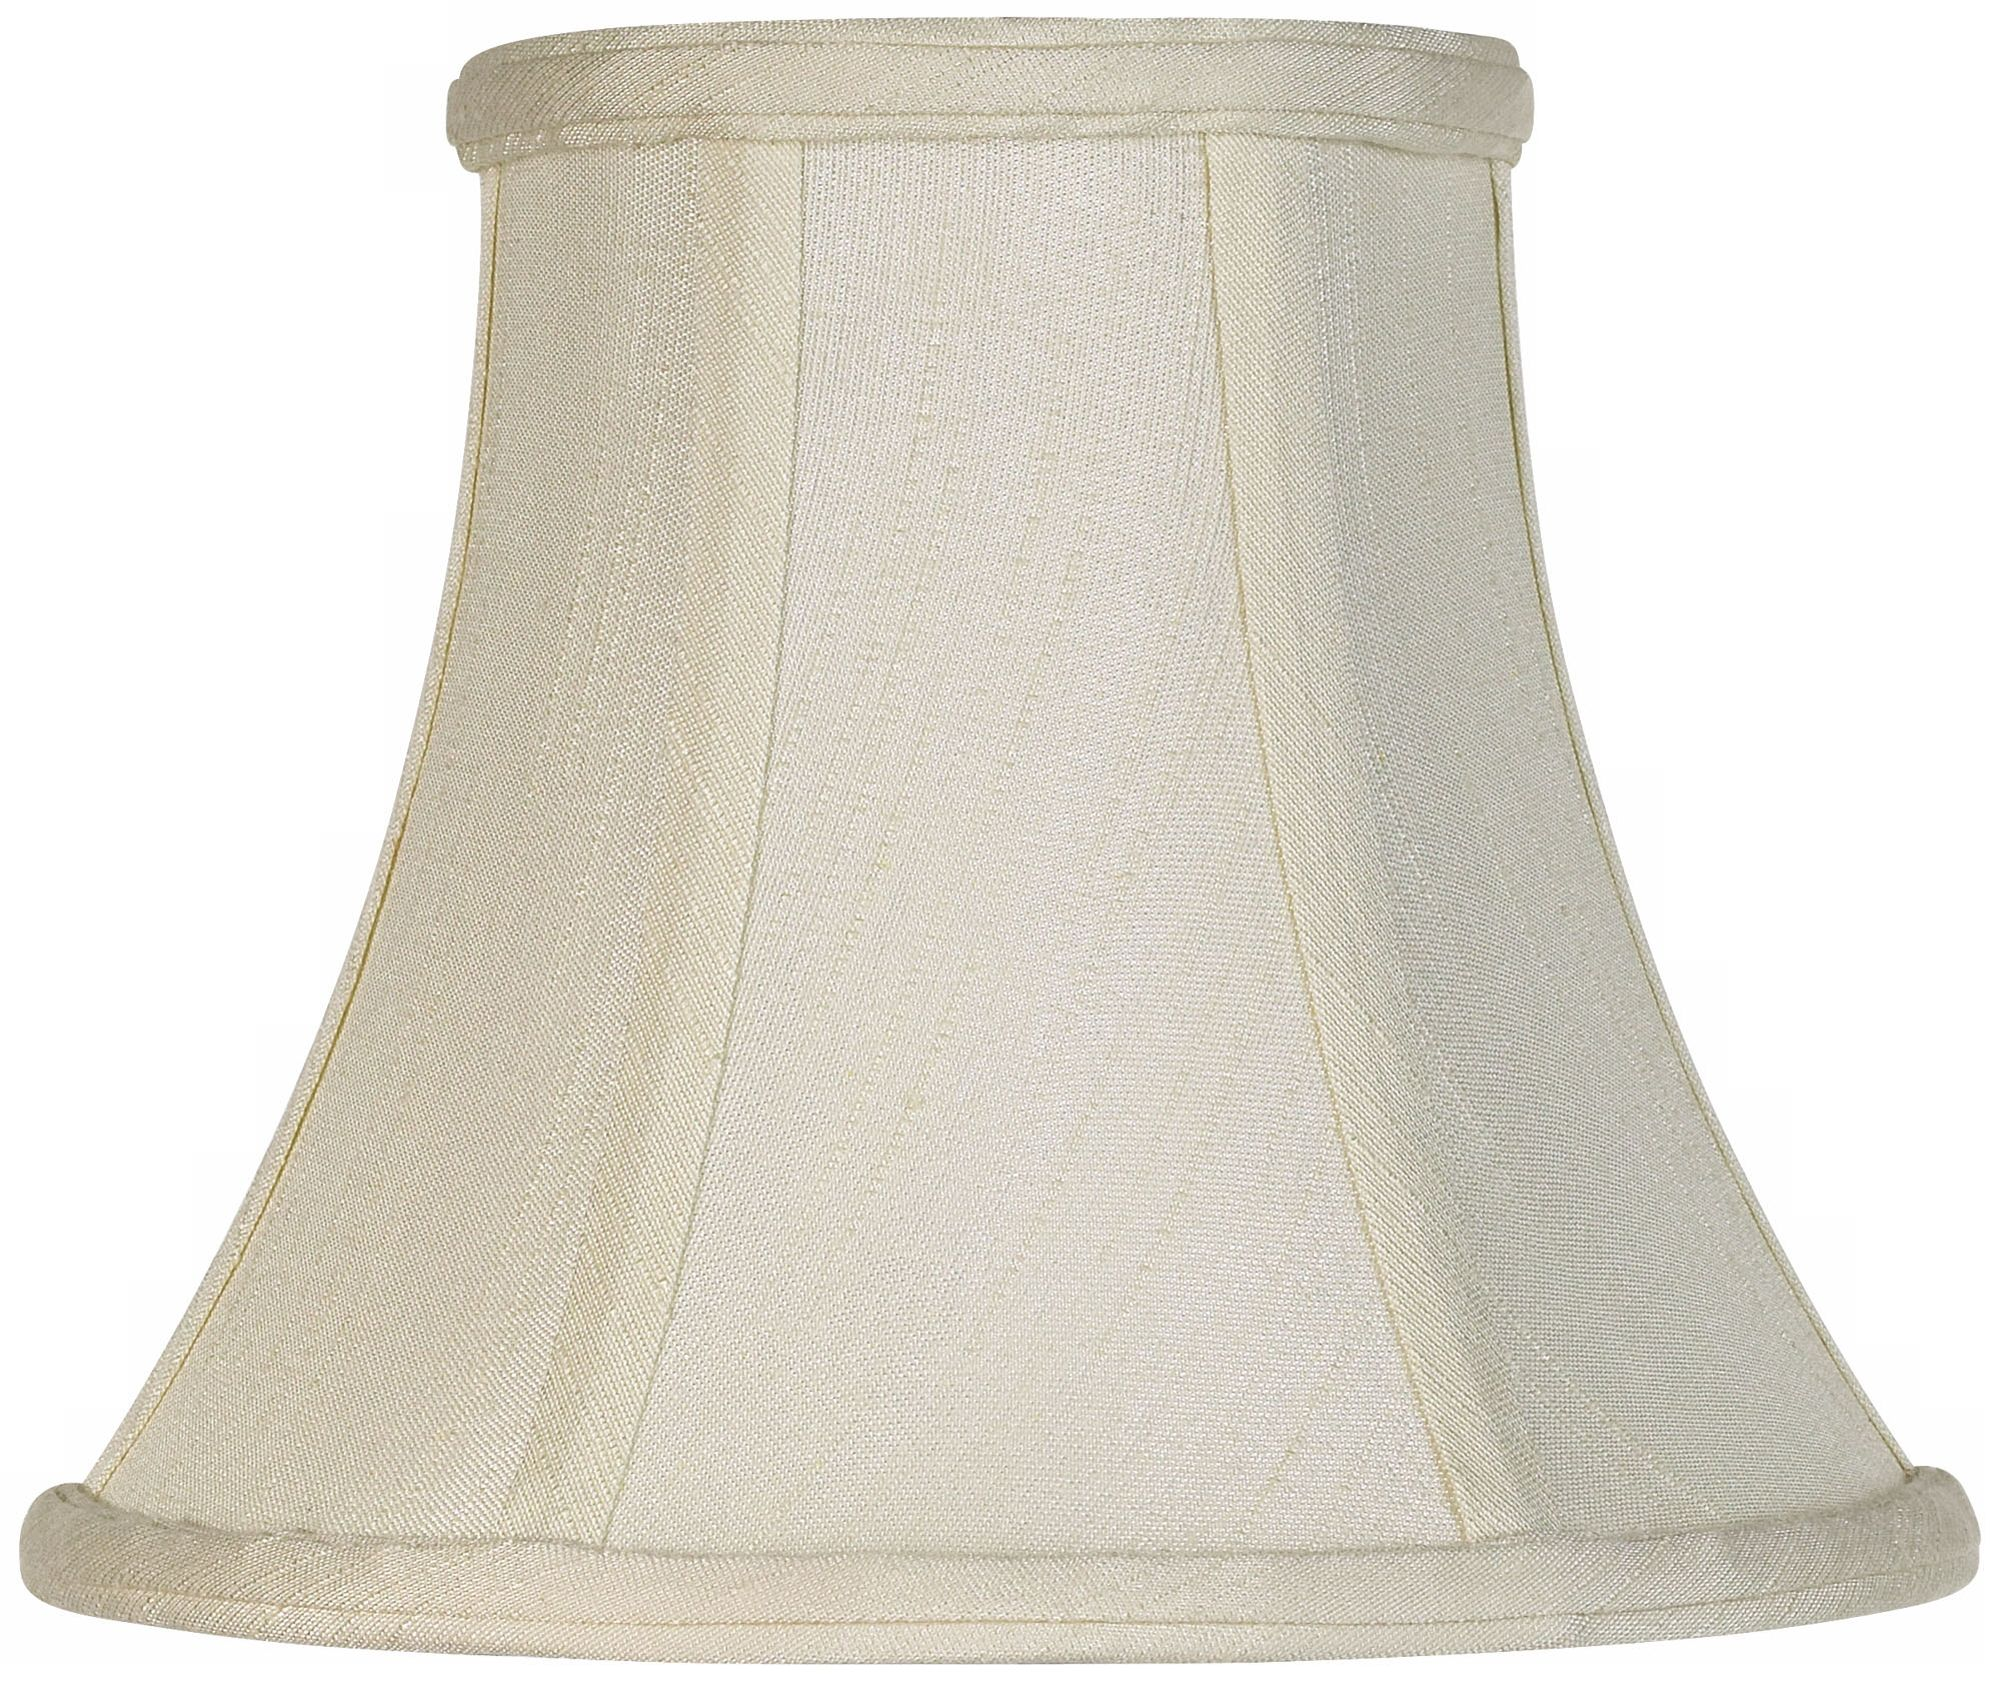 Imperial Collection™ Creme Lamp Shade 4.5x8.5x7 (Clip On)